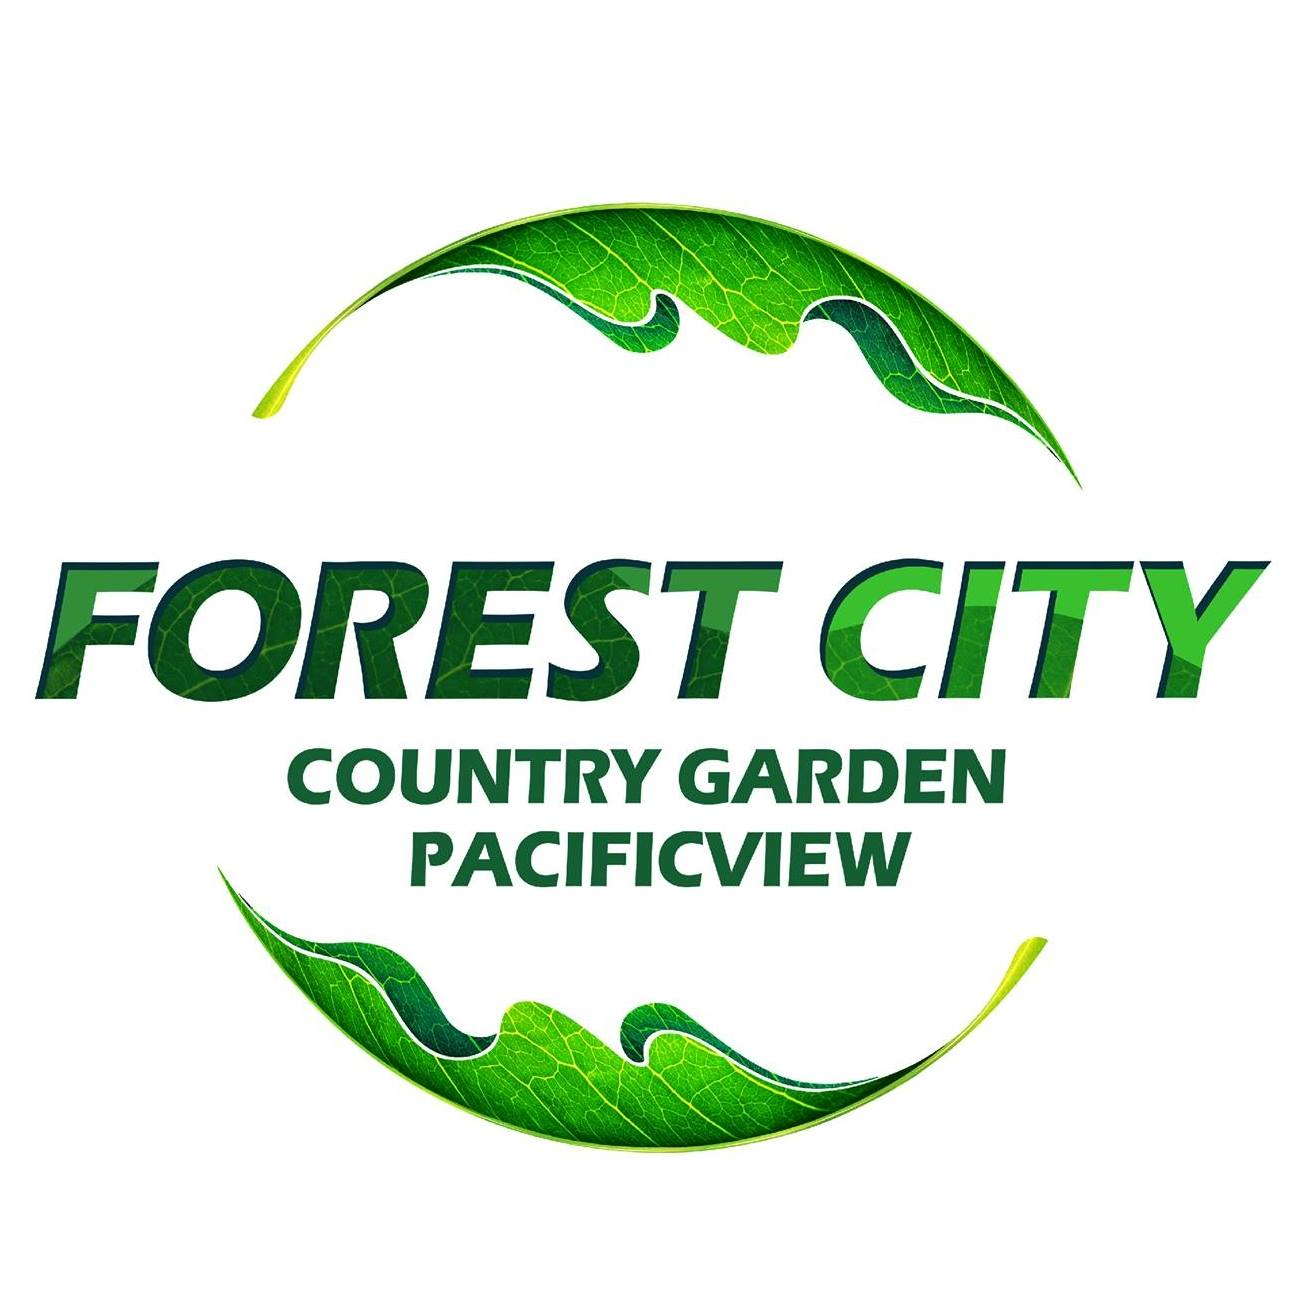 Forest City Malaysia Gives Priority to Mangrove Conservation